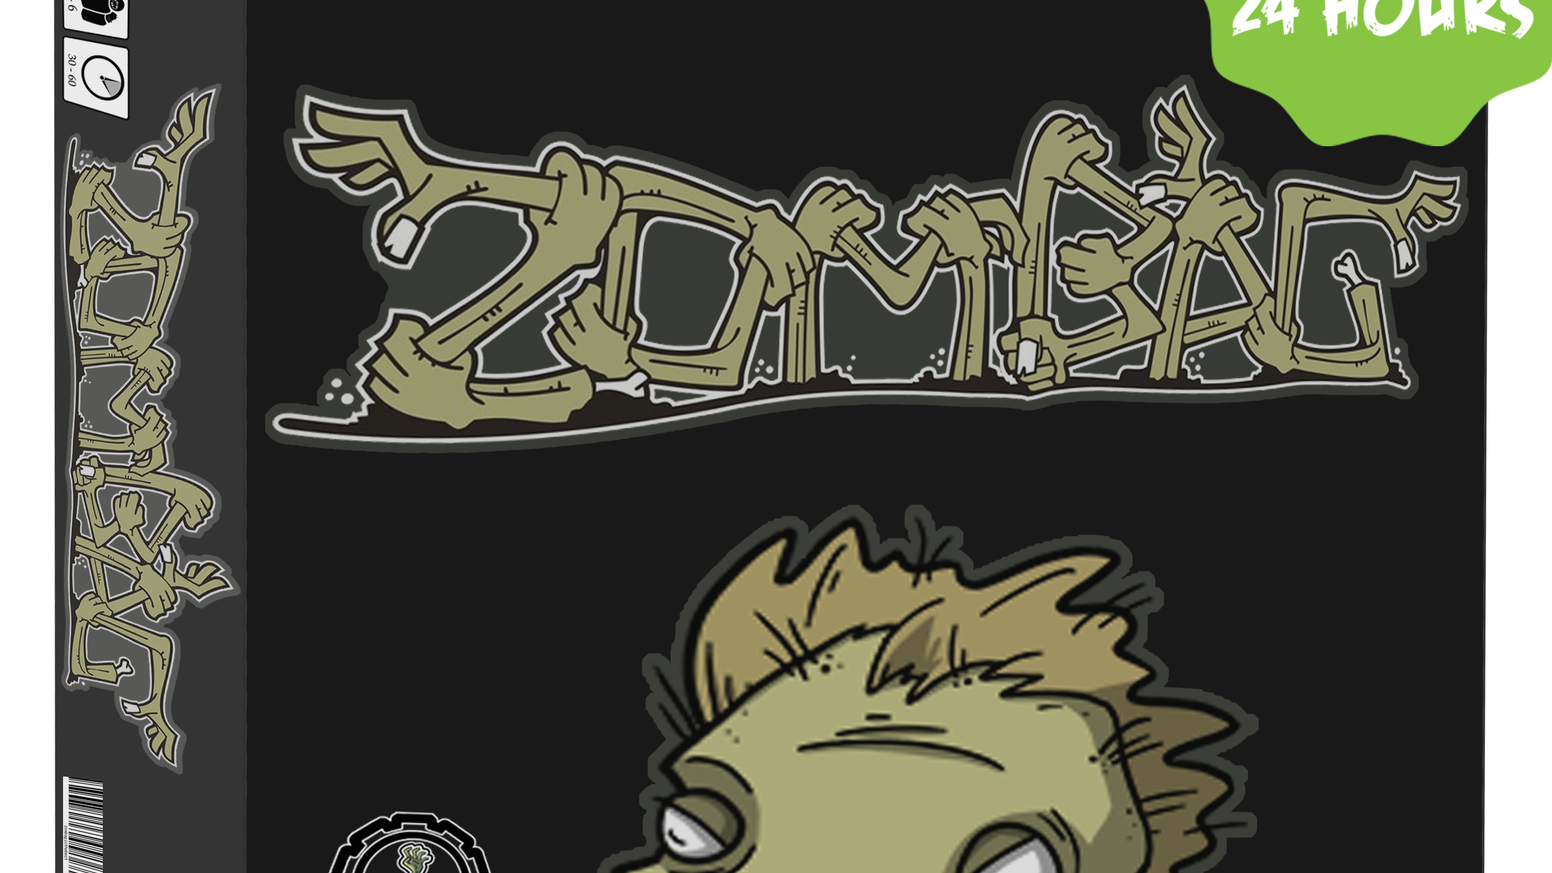 Outmaneuver your opponents, survive the zombie outbreak, and hope for good fortune. Take the apocalypse wherever you go, with Zombag!